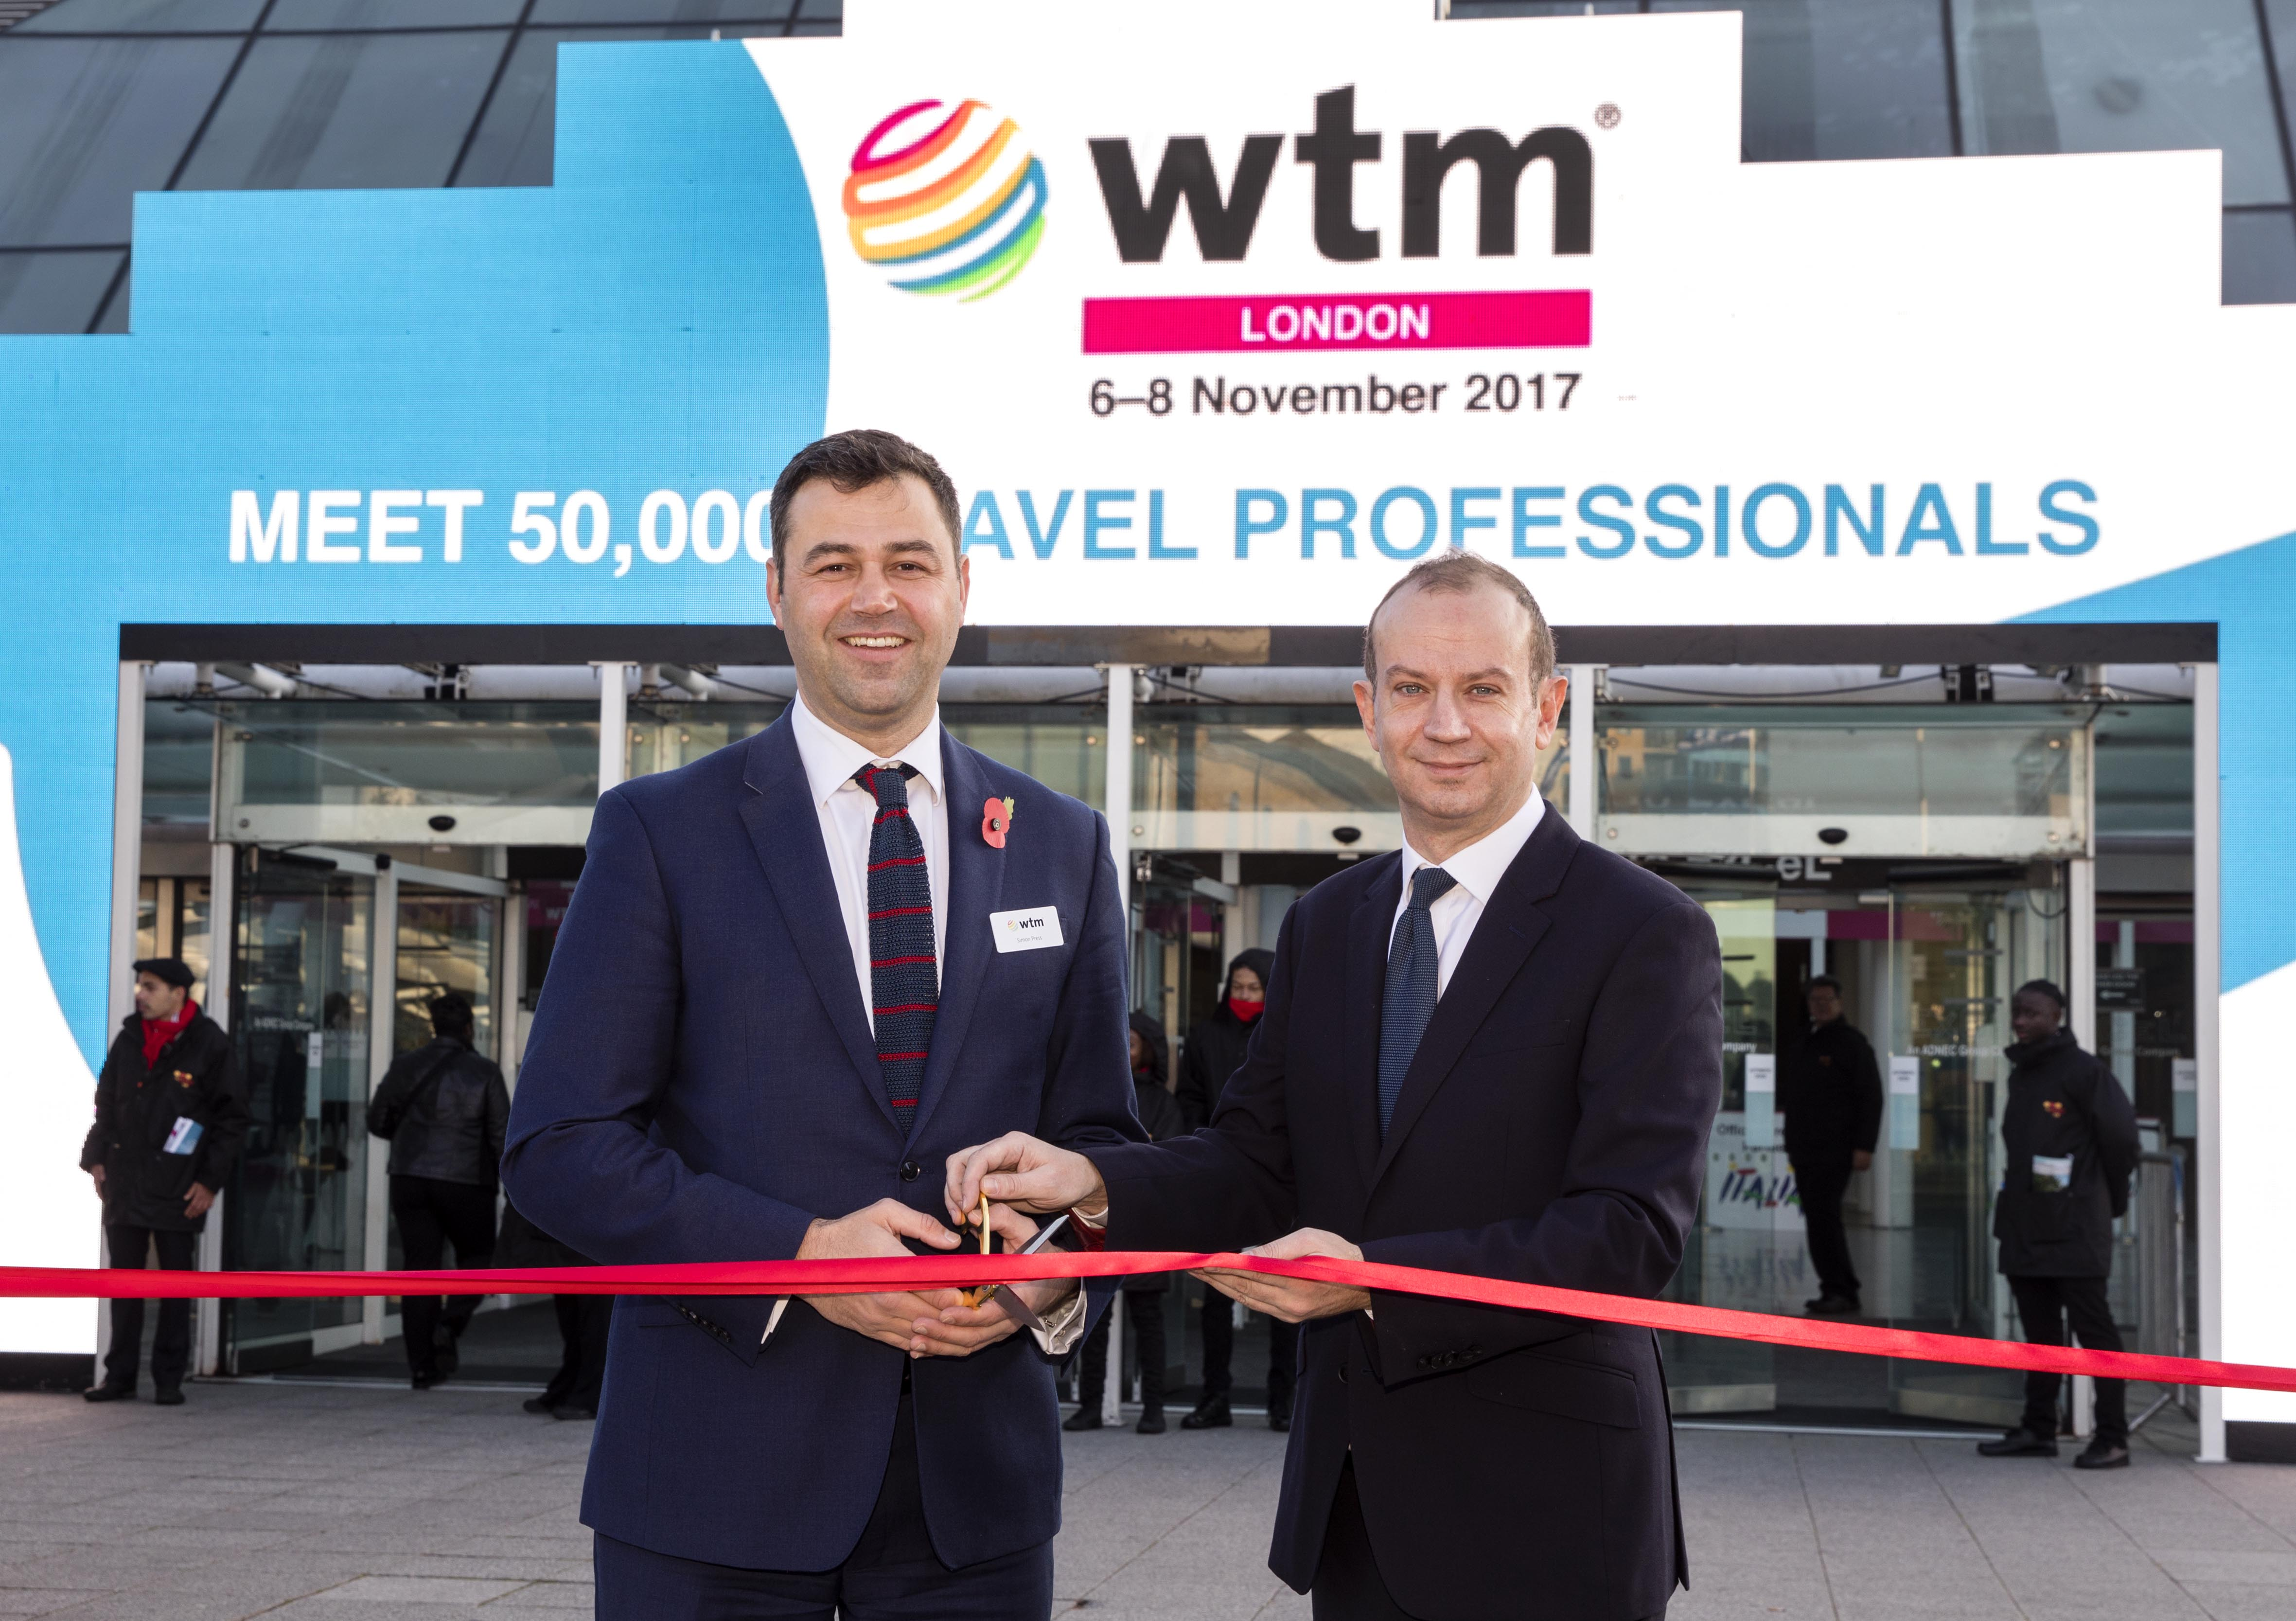 WTM London and DTTT collaborate to solve overcrowding